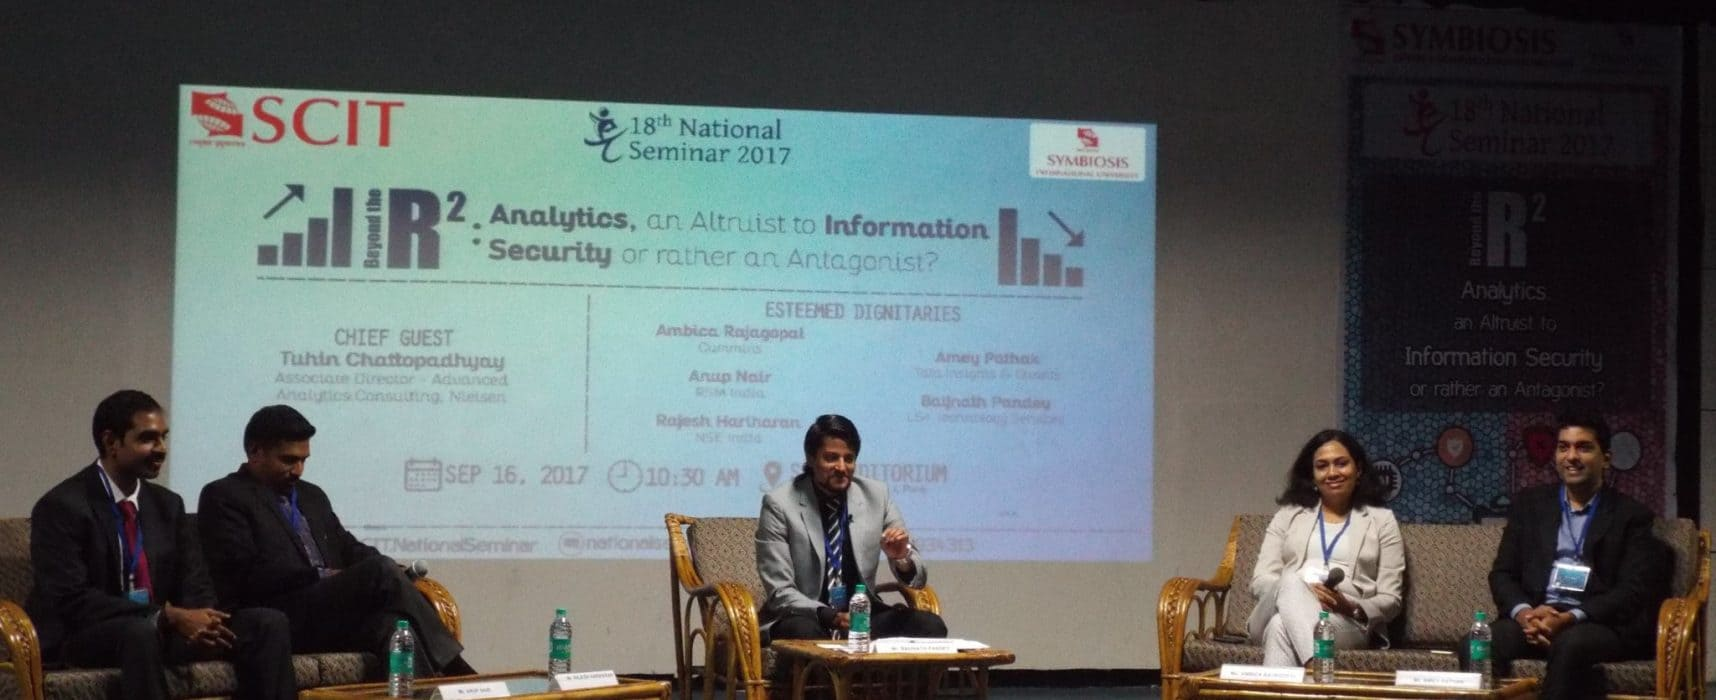 National Seminar on Data Analytics and Information Security